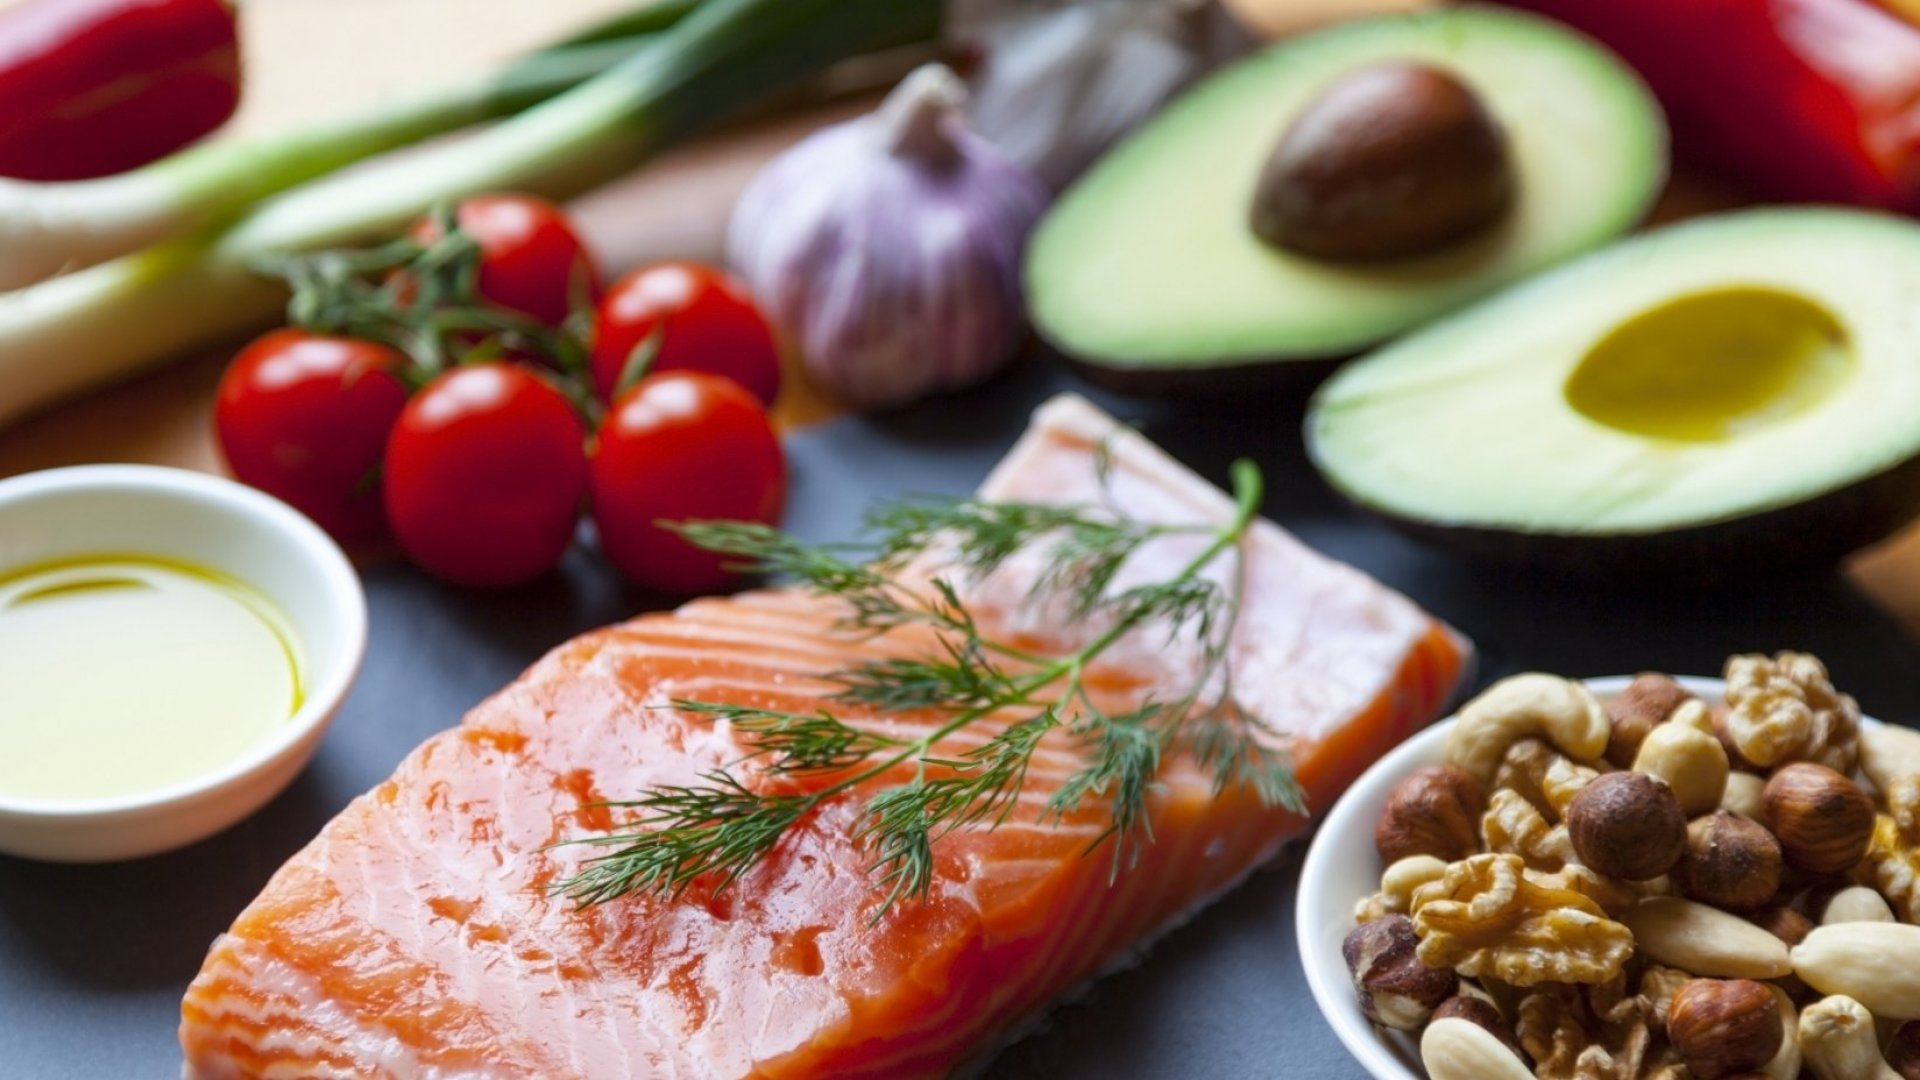 You Know the Right Foods Can Improve Your Mood. Turns Out They May Actually Treat Depression